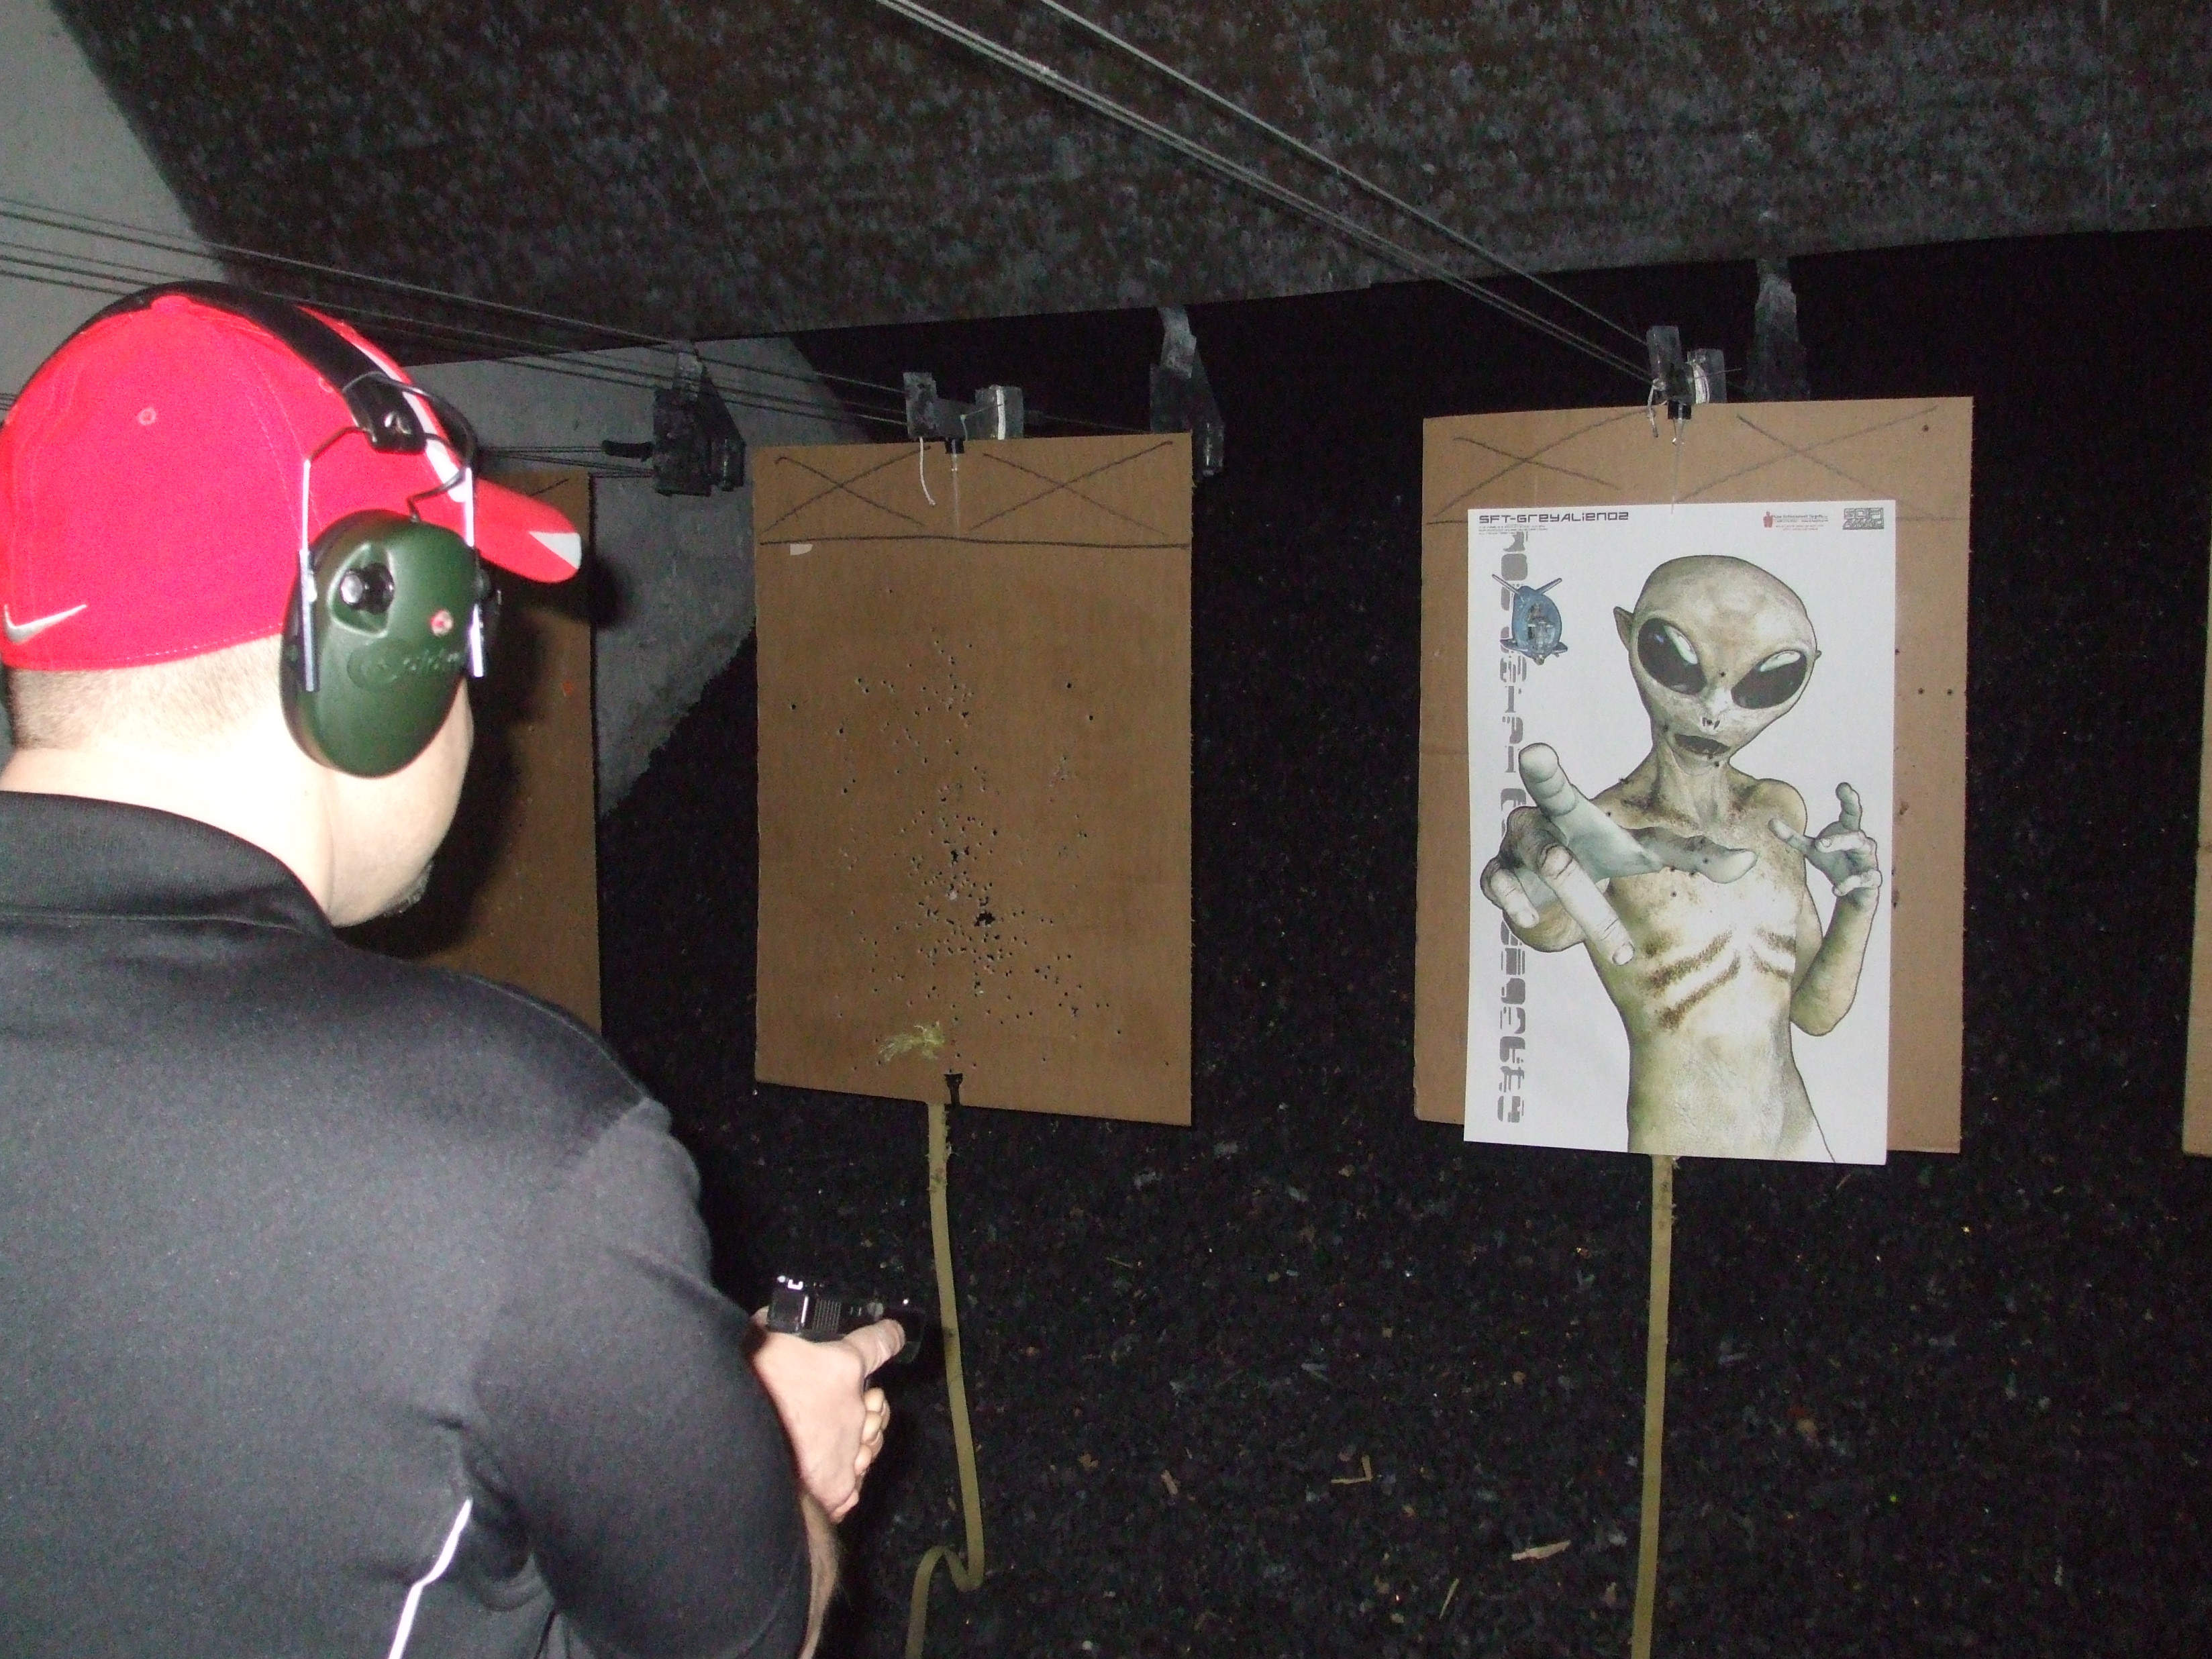 Shooter confronts alien during firearms training Low-Light Fight Drill.